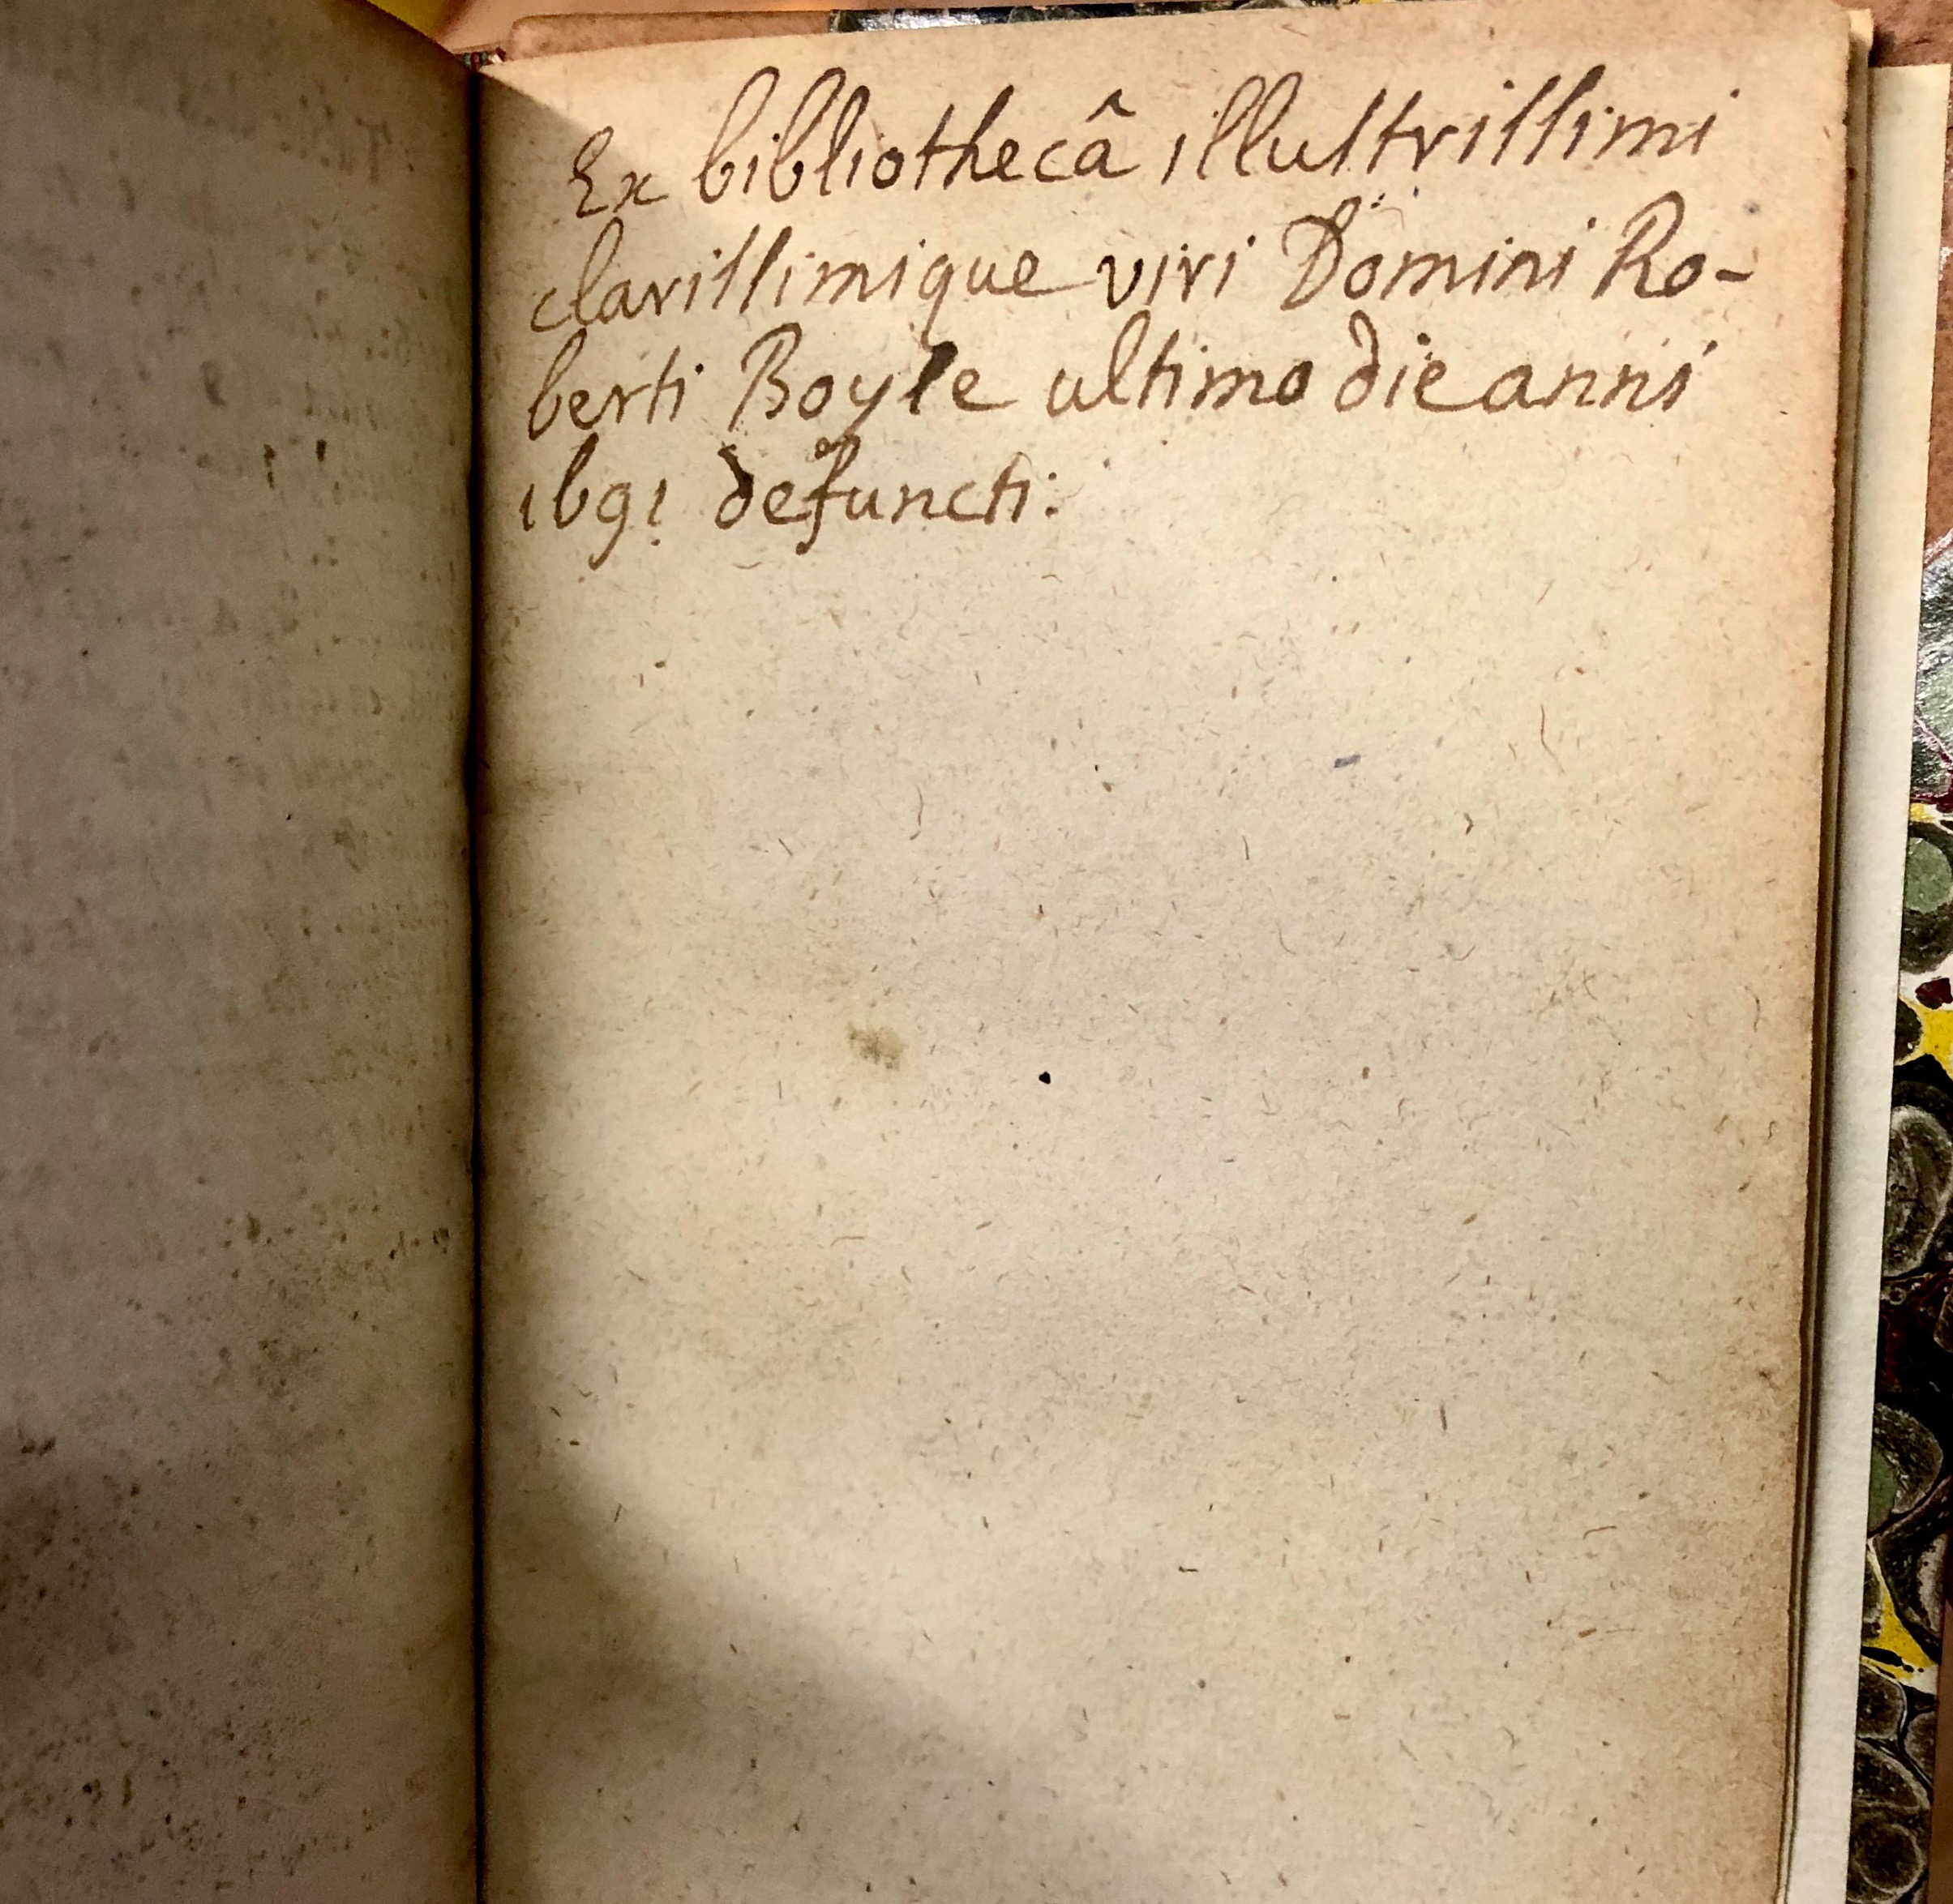 Manuscript note confirming that Robert Boyle owned this book! 'Traittez des baromètres, thermomètres, et notiomètres : ou hygromètres' by Joachim d'Alence, 1688, Amsterdam. (Maddison Collection 2A5, F10456500)